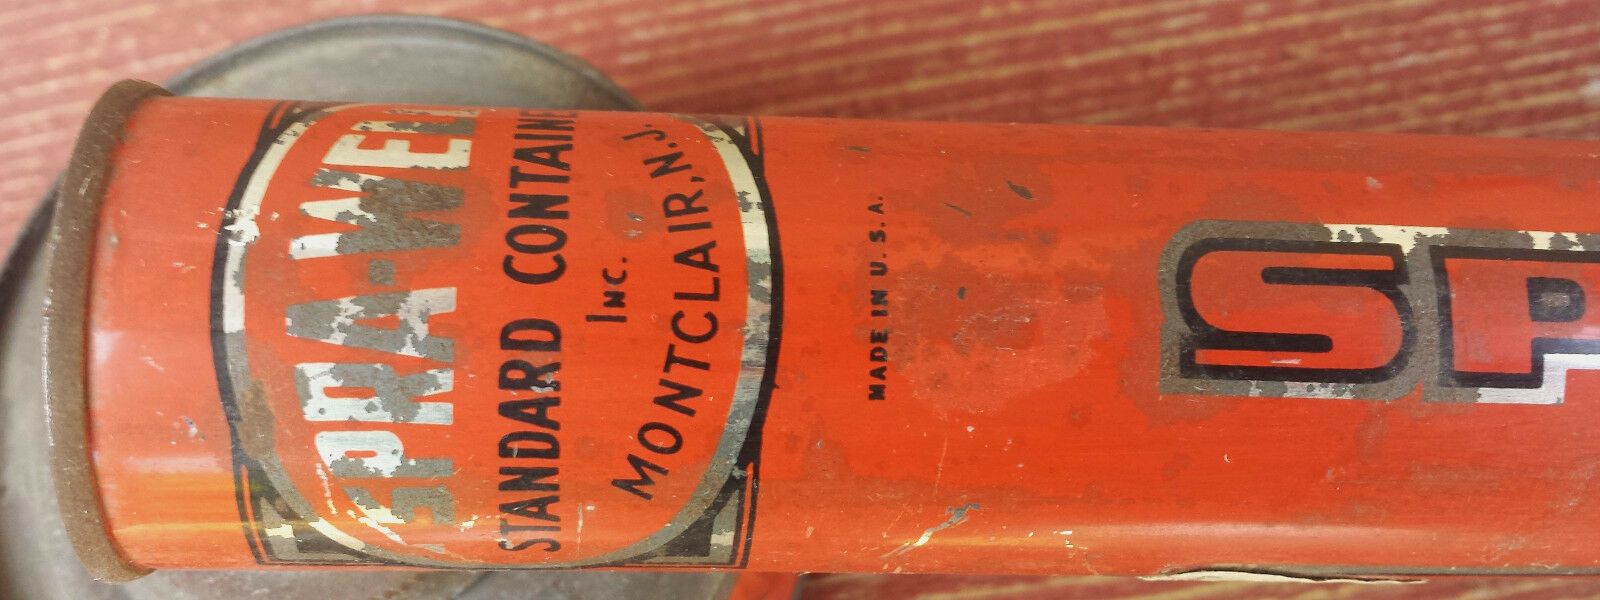 VINTAGE SPRA-WELL BUG SPRAYER STANDARD CONTAINER INC MONTCLAIR NJ